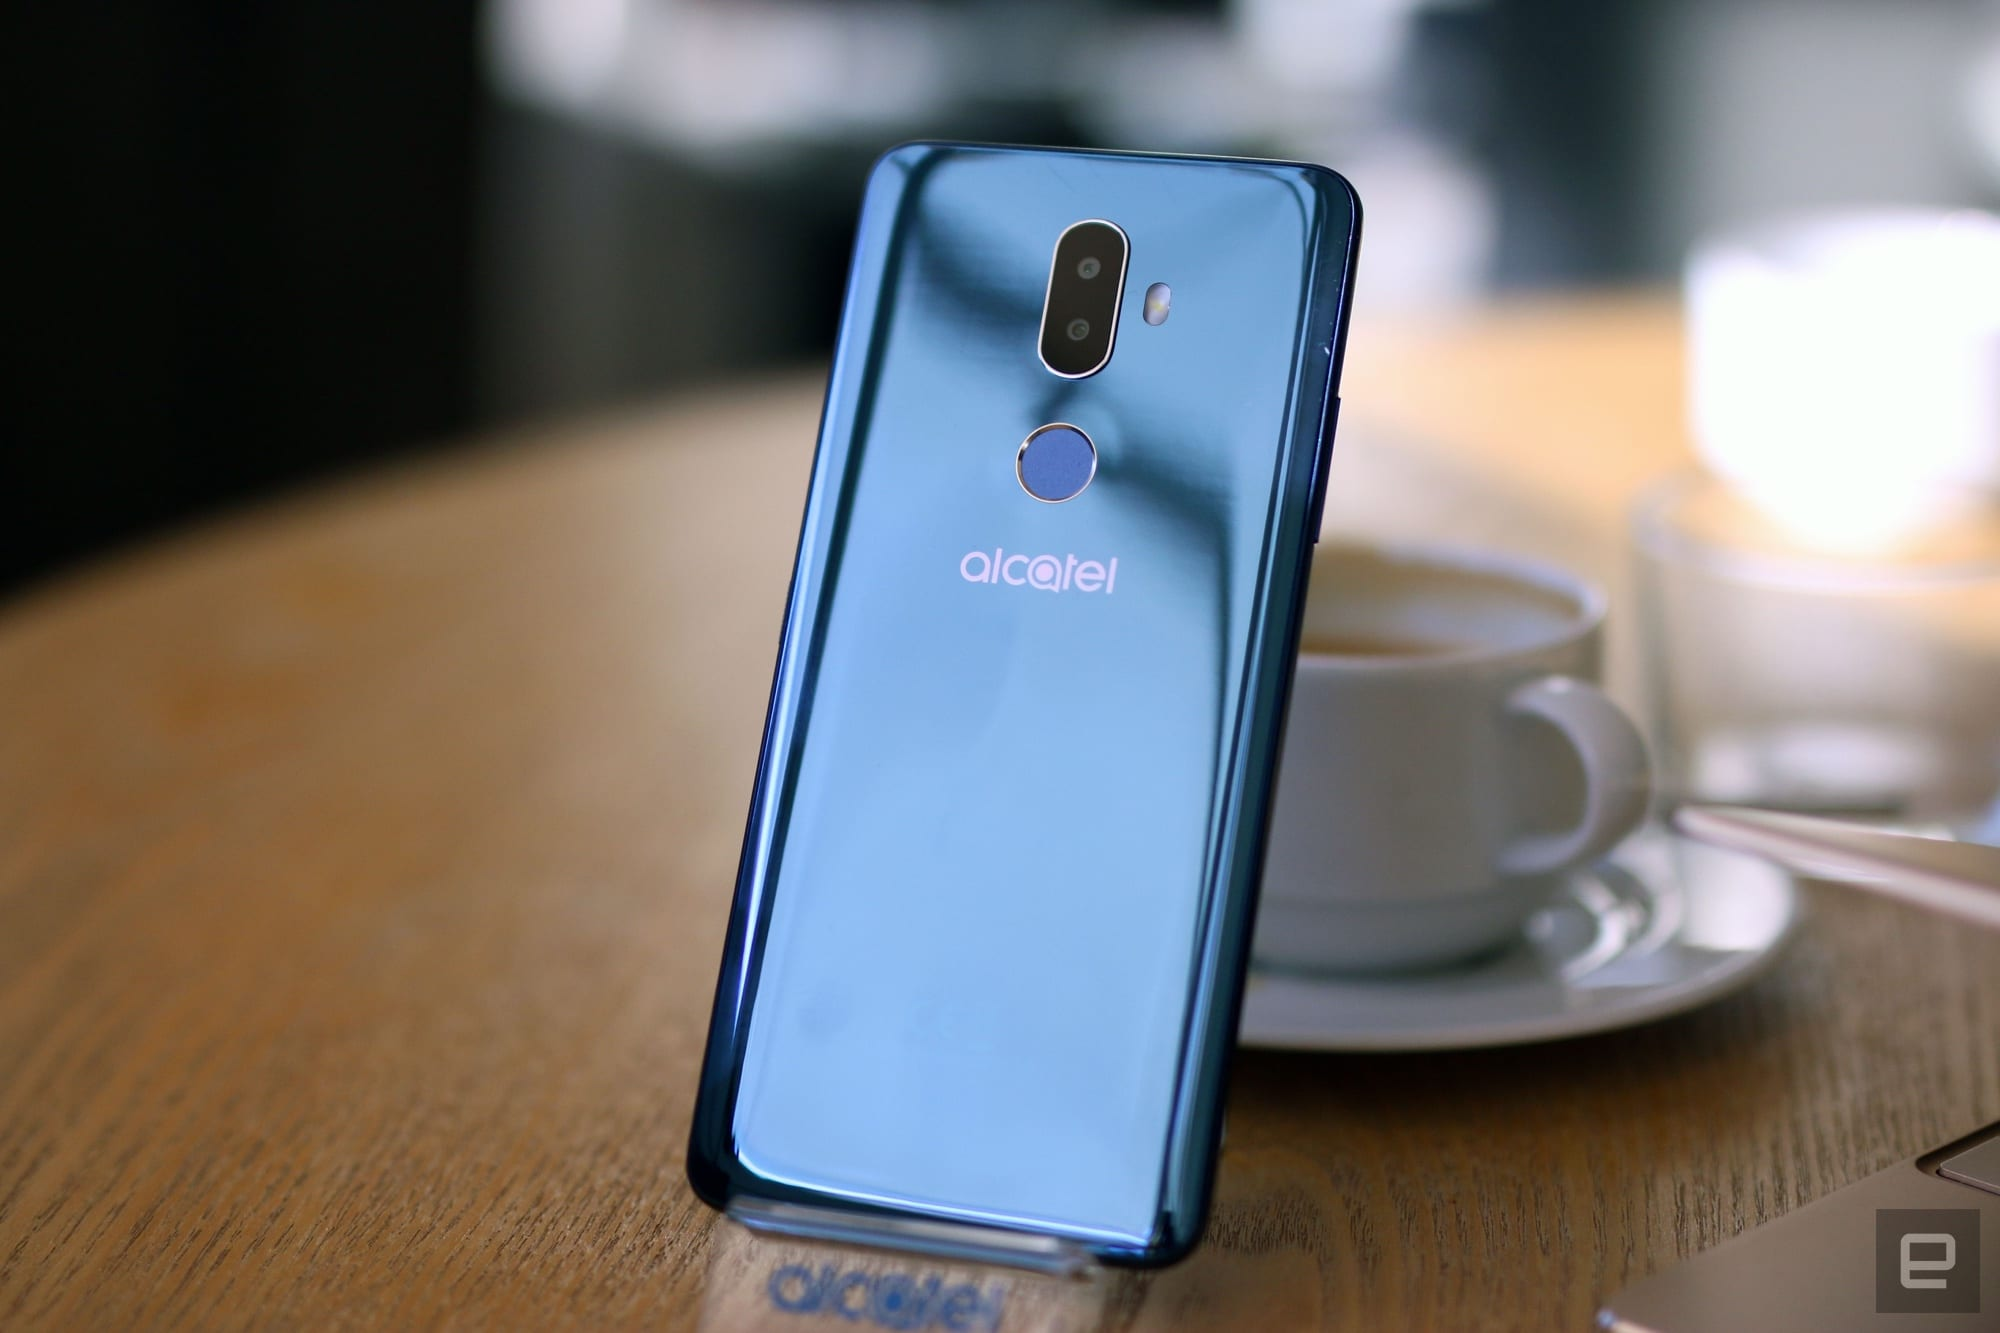 Alcatel crams flagship features into its affordable smartphones